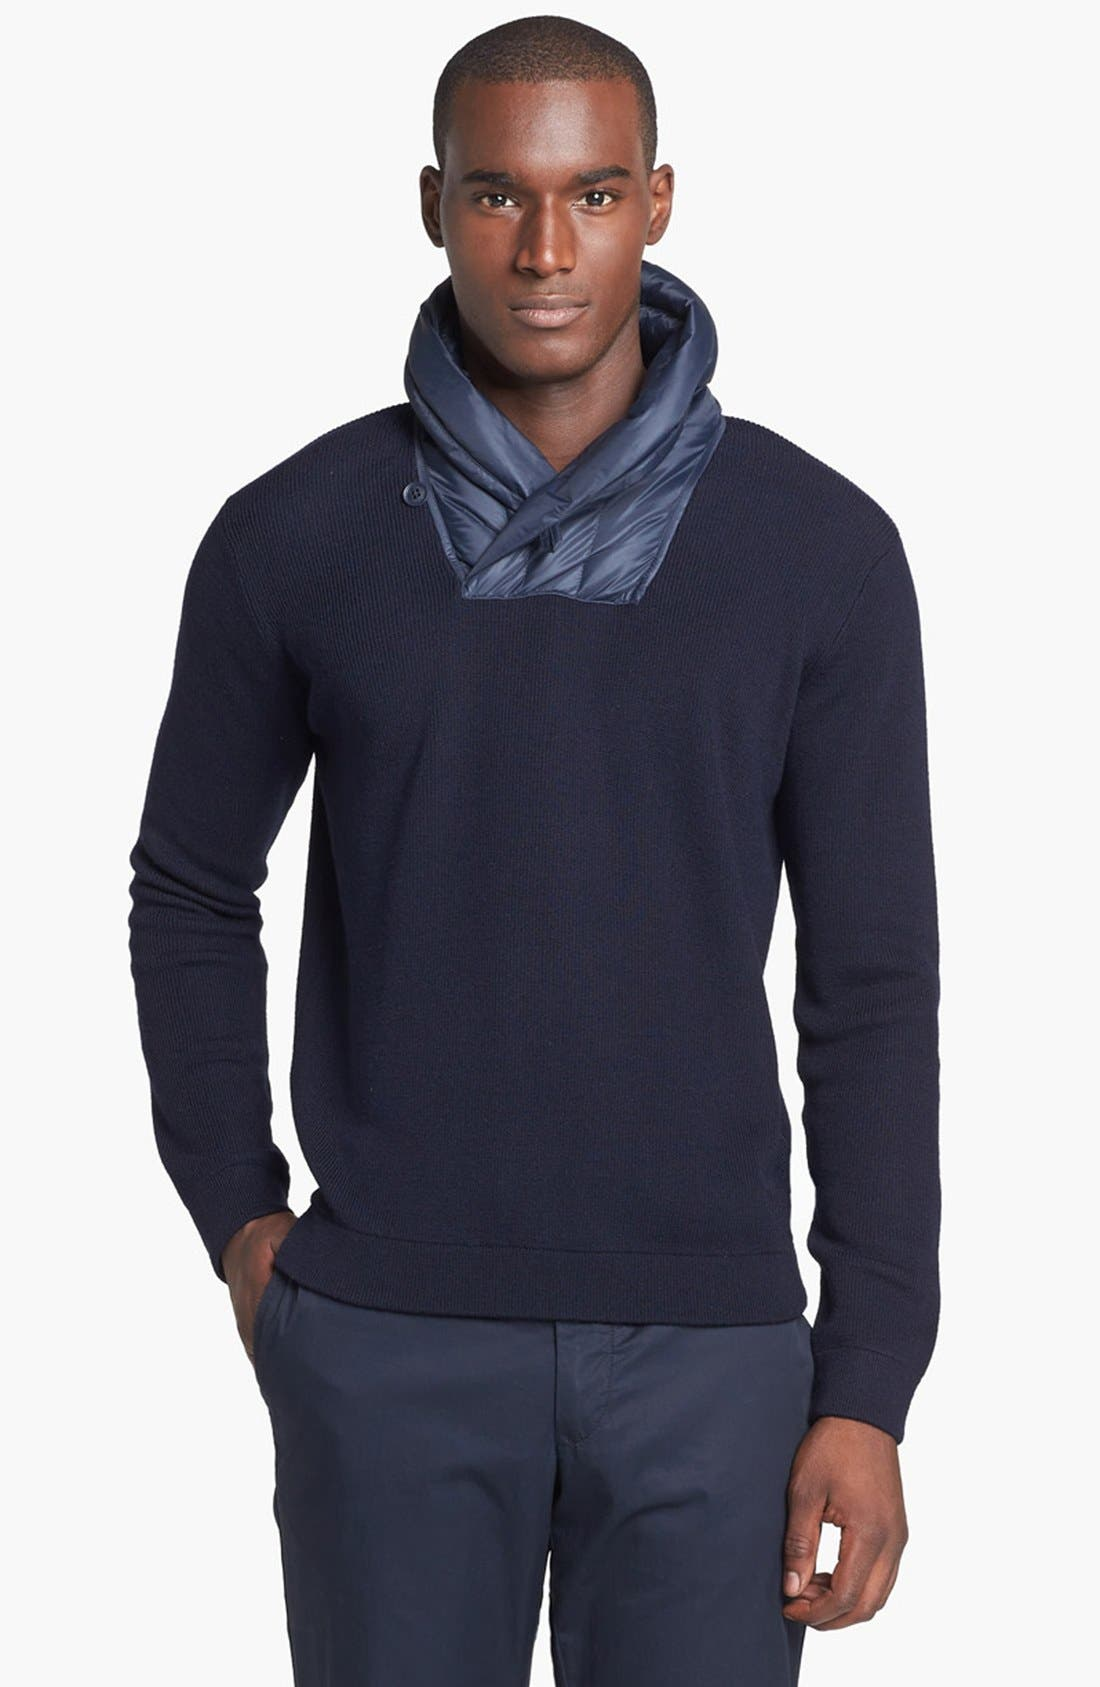 Alternate Image 1 Selected - Zegna Sport Water Repellent Shawl Collar Sweater